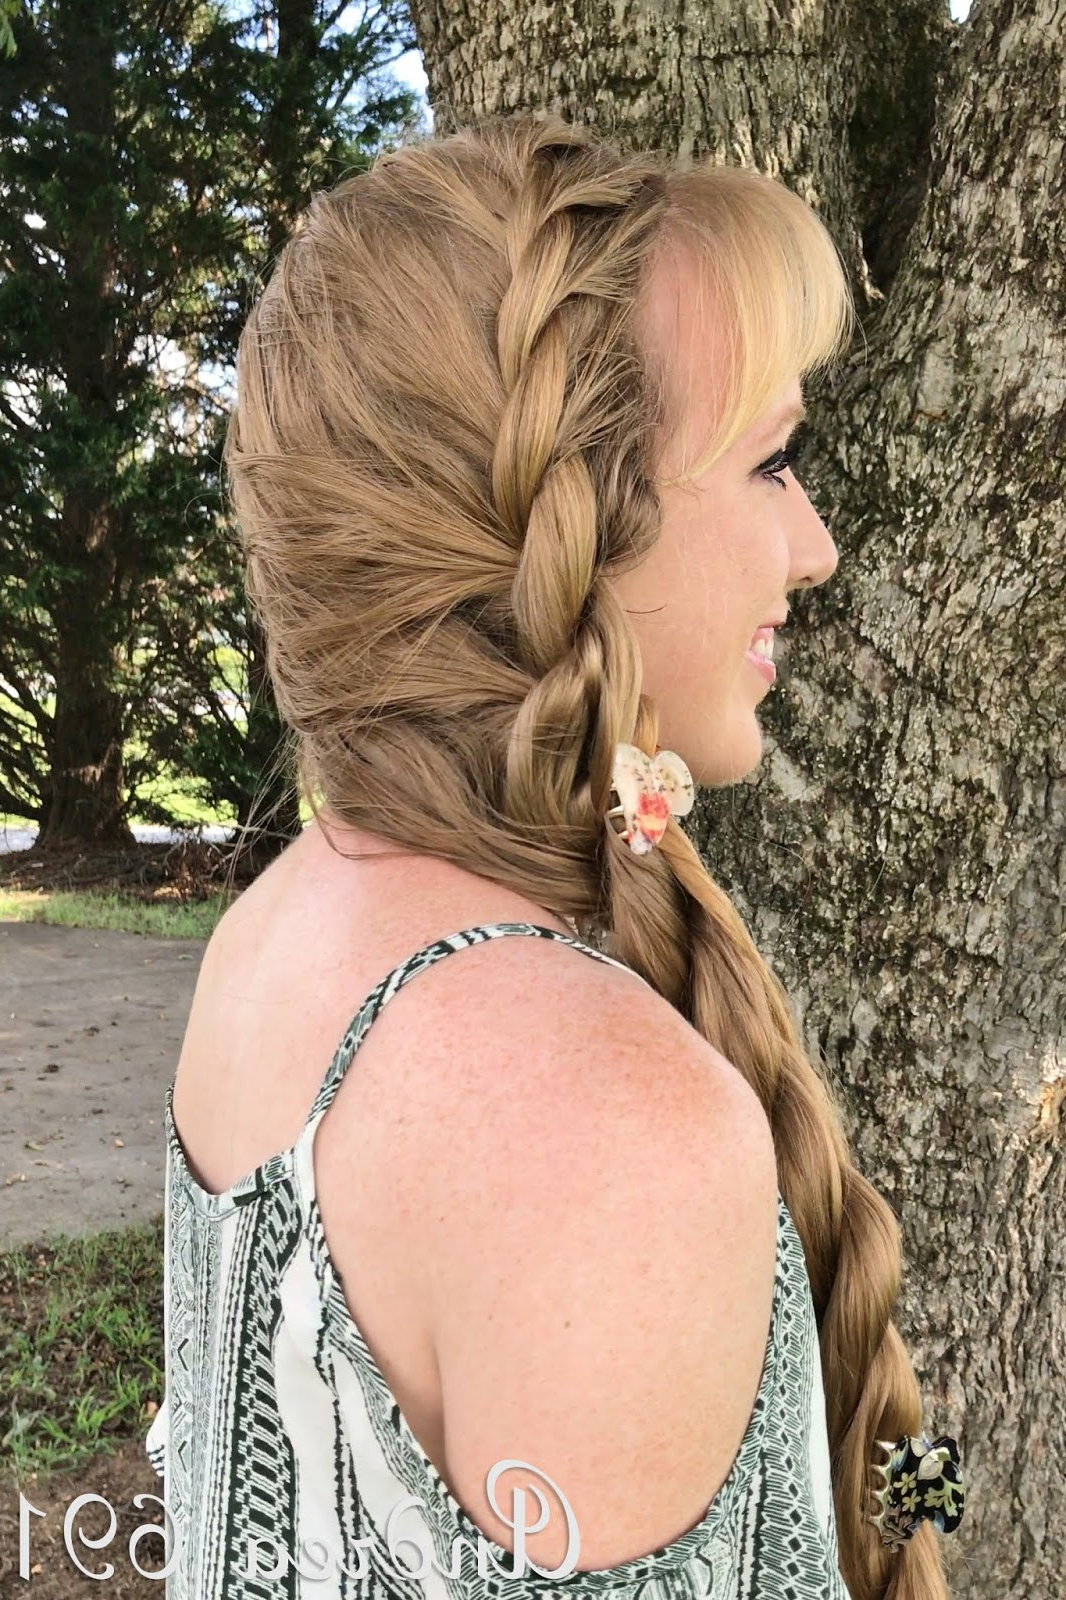 Well Liked Double Rapunzel Side Rope Braid Hairstyles Inside Braids & Hairstyles For Super Long Hair: Side Rope Braid (View 4 of 20)